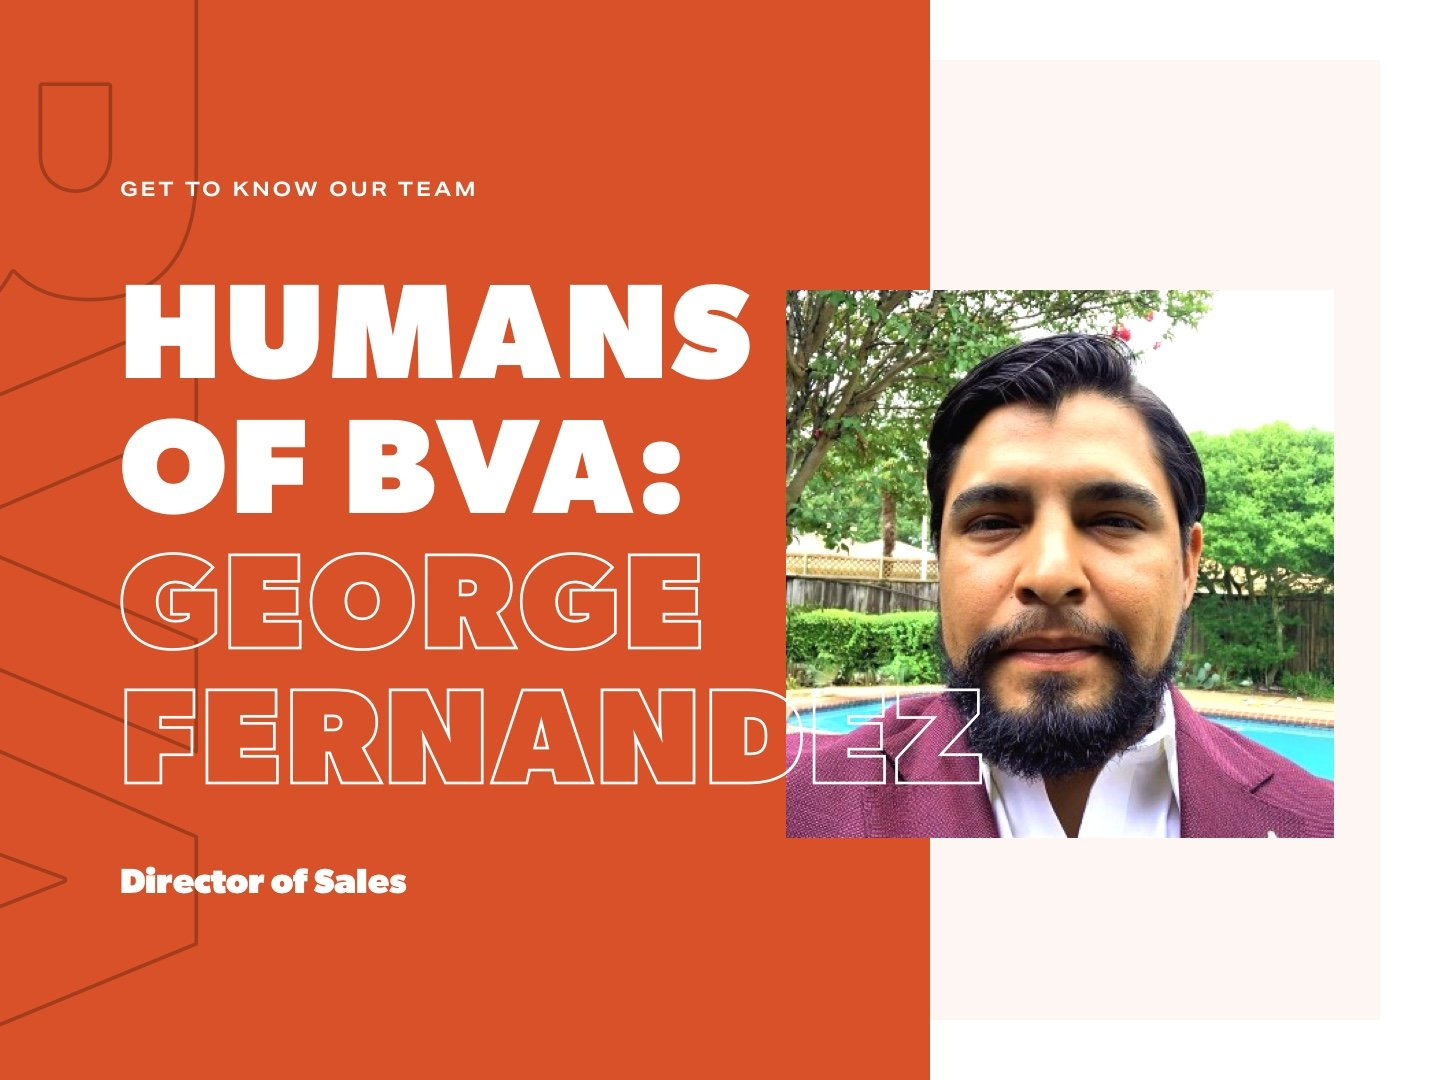 Trends in eCommerce: A Chat with BVA's Director of Sales, George Fernandez Featured Image